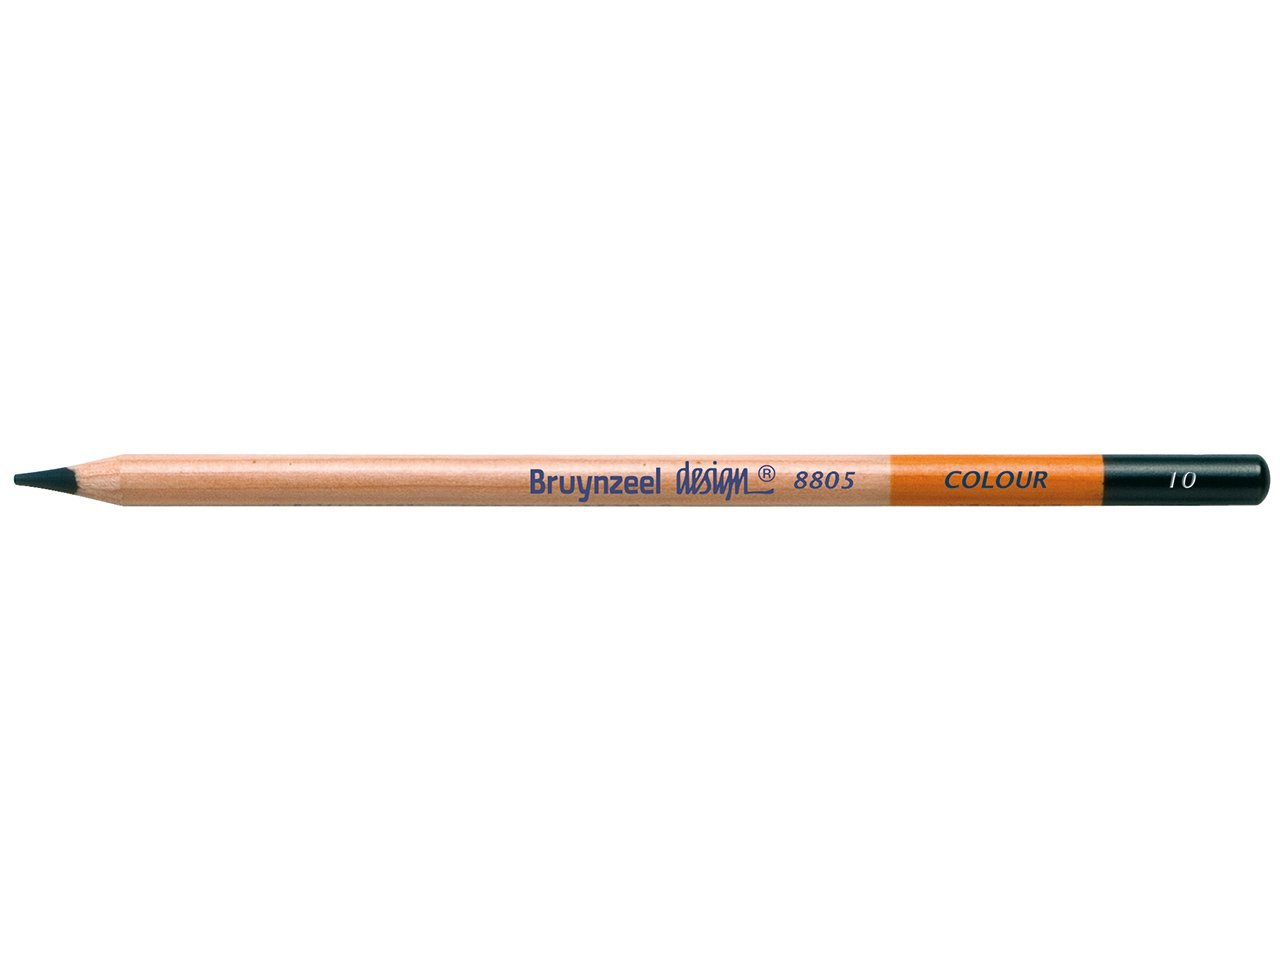 Bruynzeel pencil - 10 Black